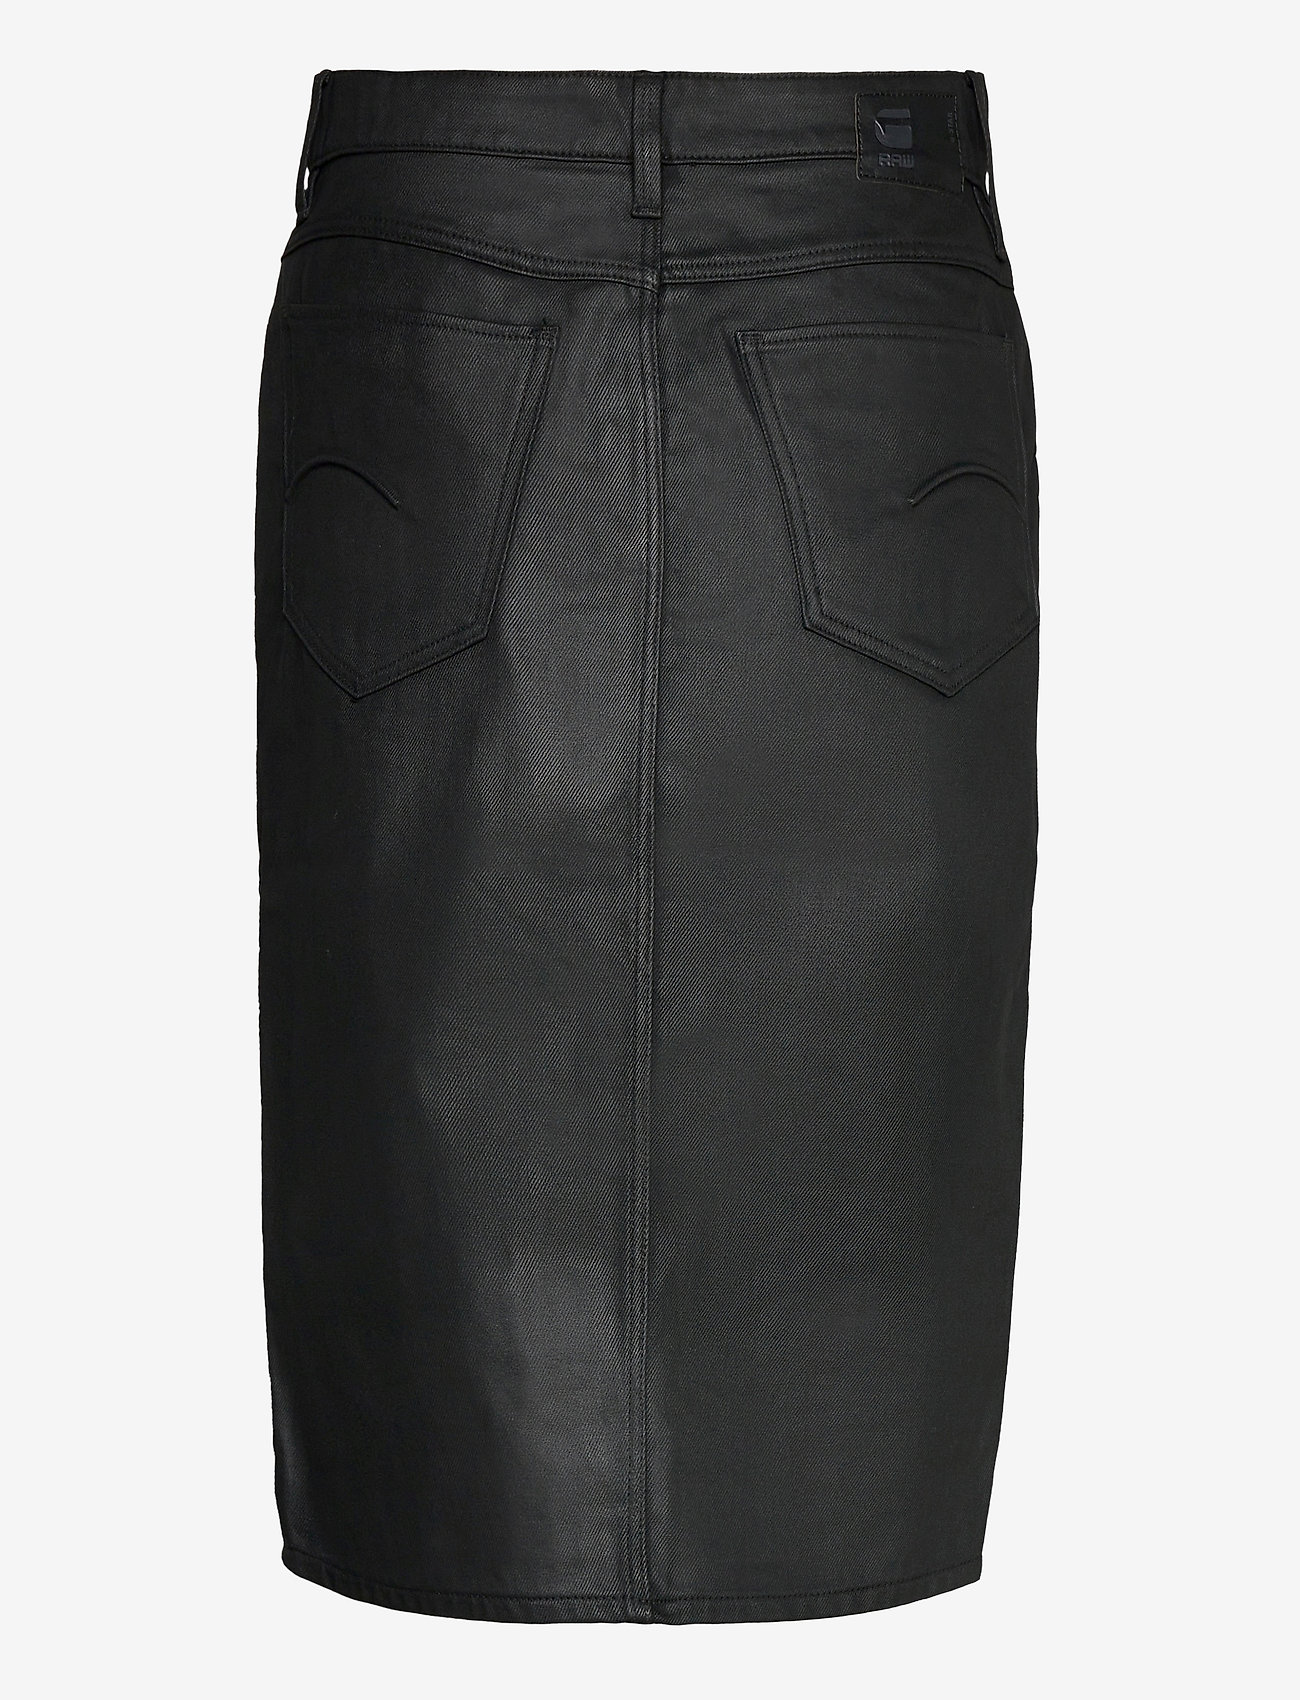 G-star RAW - Noxer Navy Pencil Button skirt - midi rokken - waxed black cobler - 1